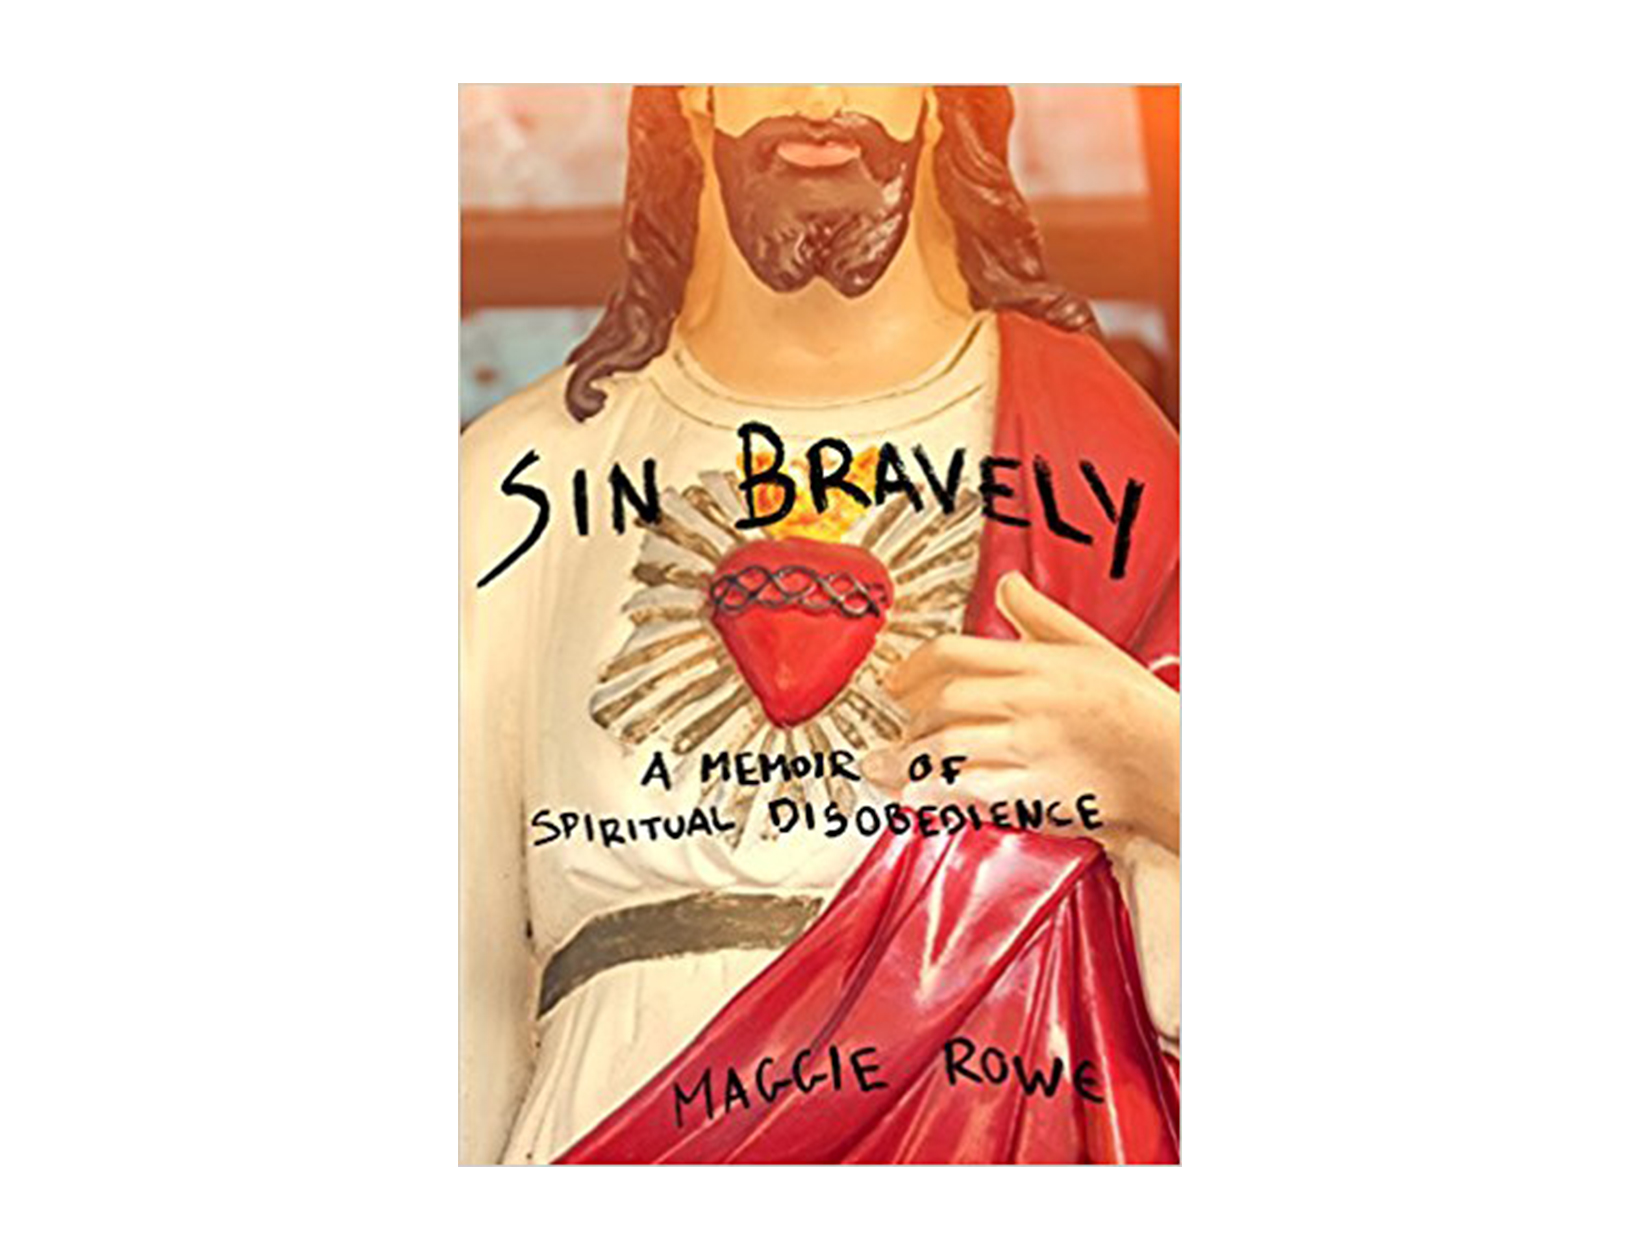 Sin Bravely: A Memoir of Spiritual Disobedience by Maggie Rowe